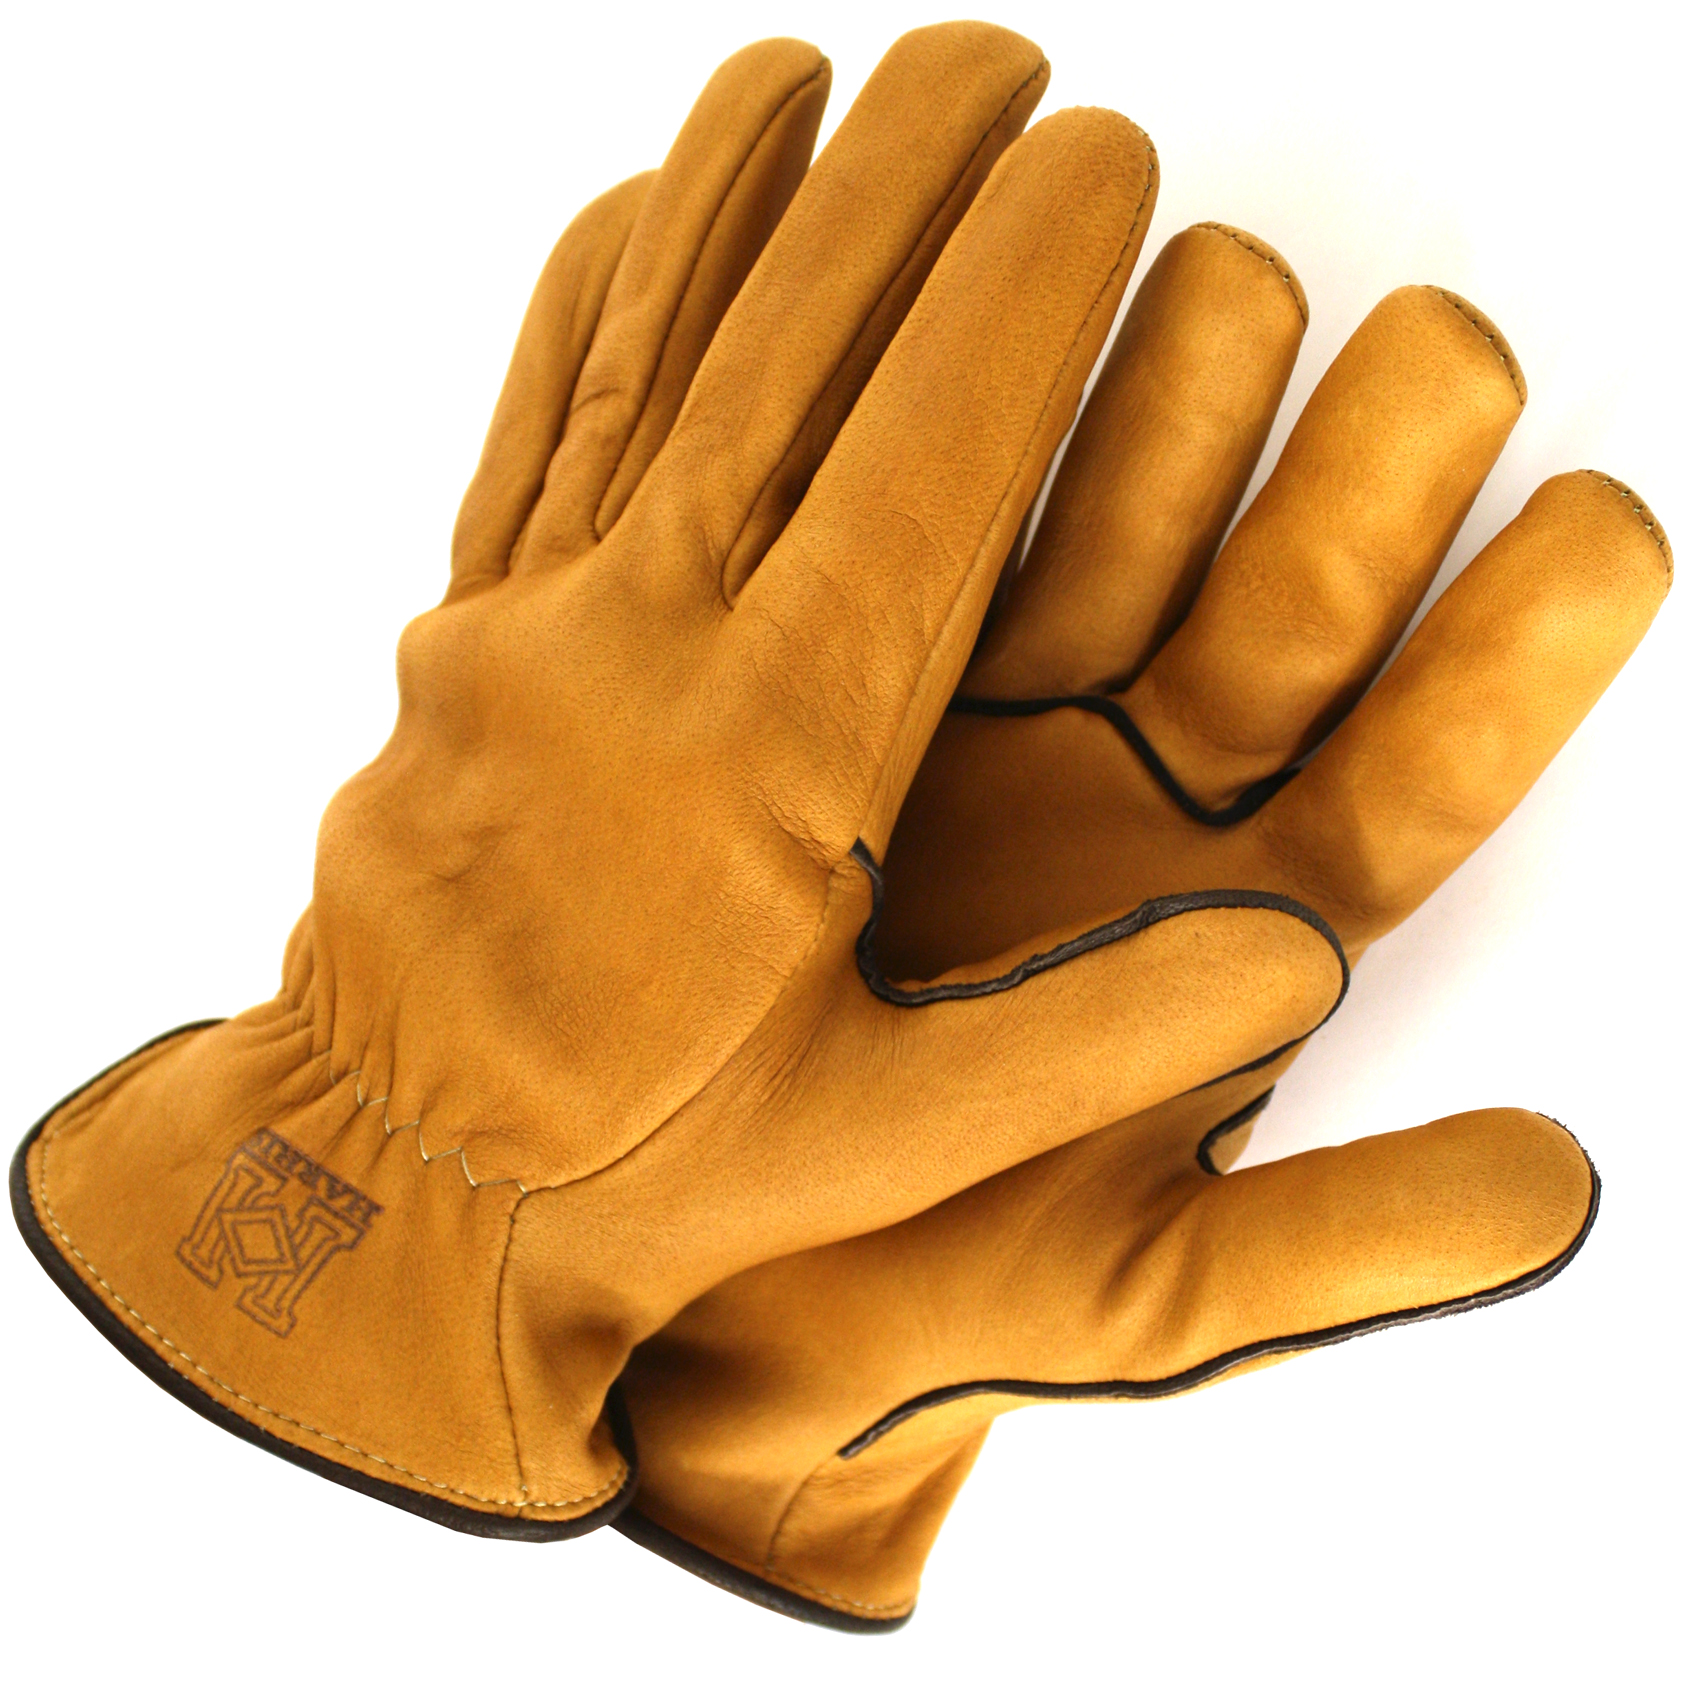 Leather work gloves lowes -  Work Gloves Gloves